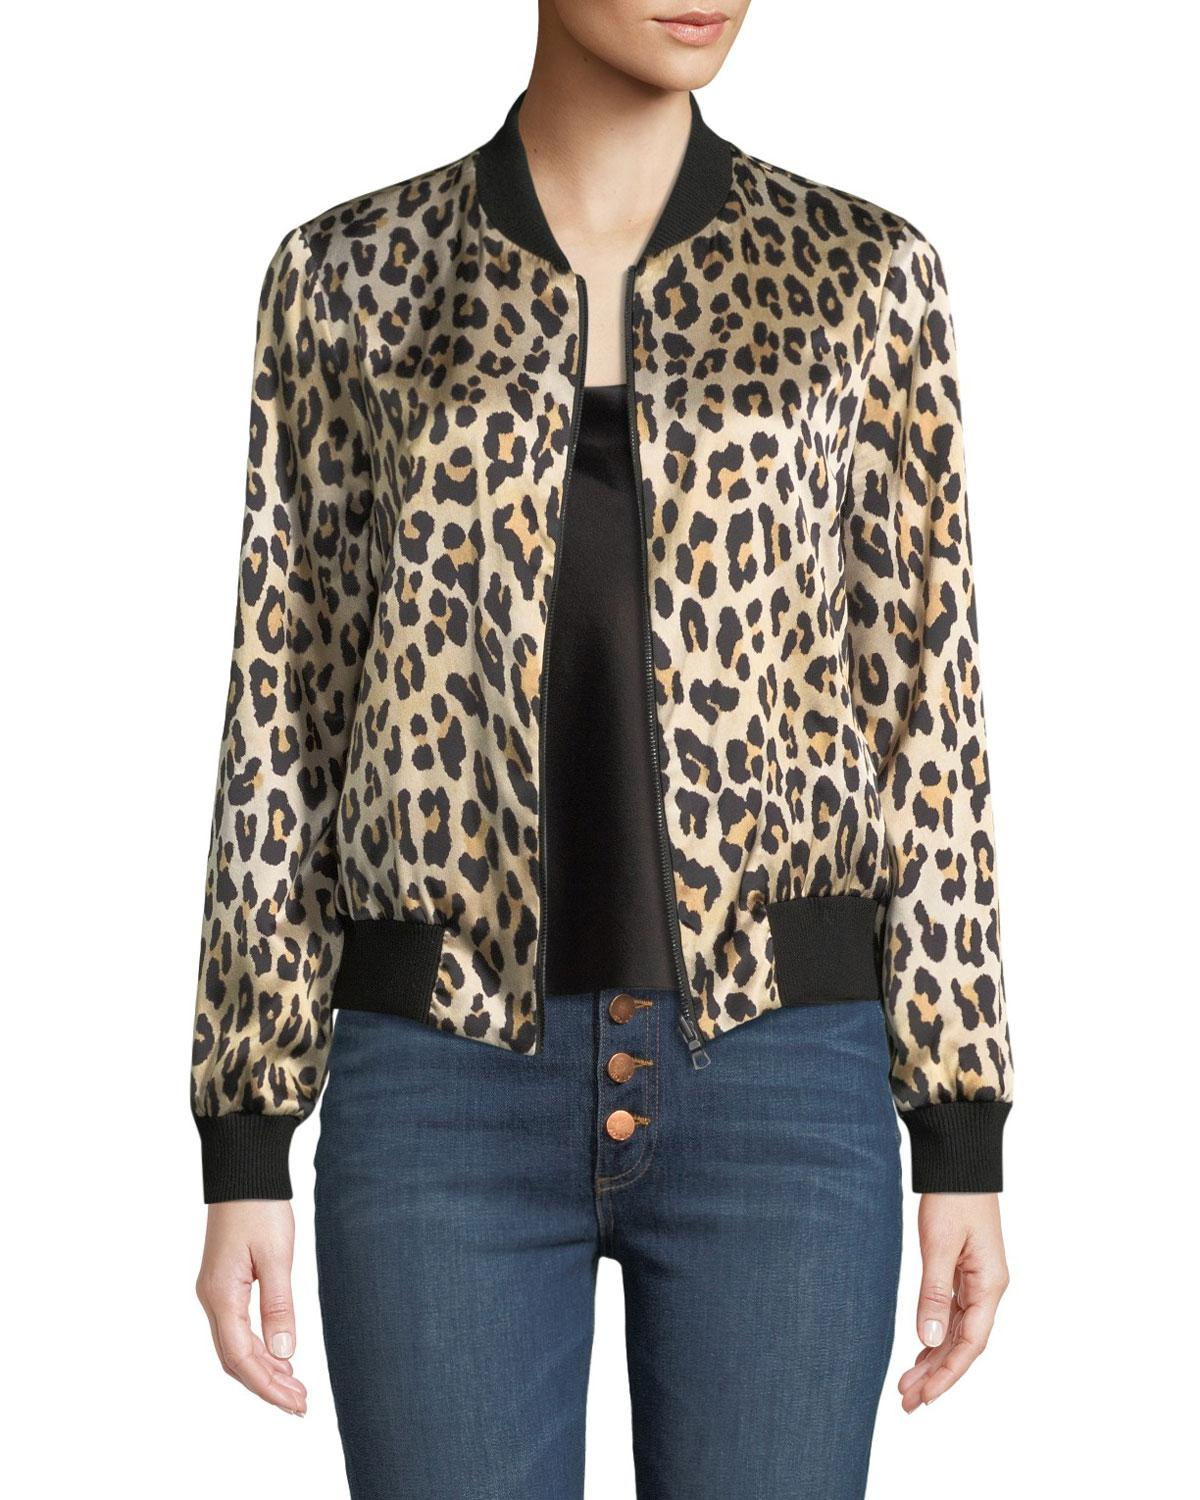 305287f82b76 Alice + Olivia Lonnie Reversible Leopard Bomber Jacket in Black - Lyst